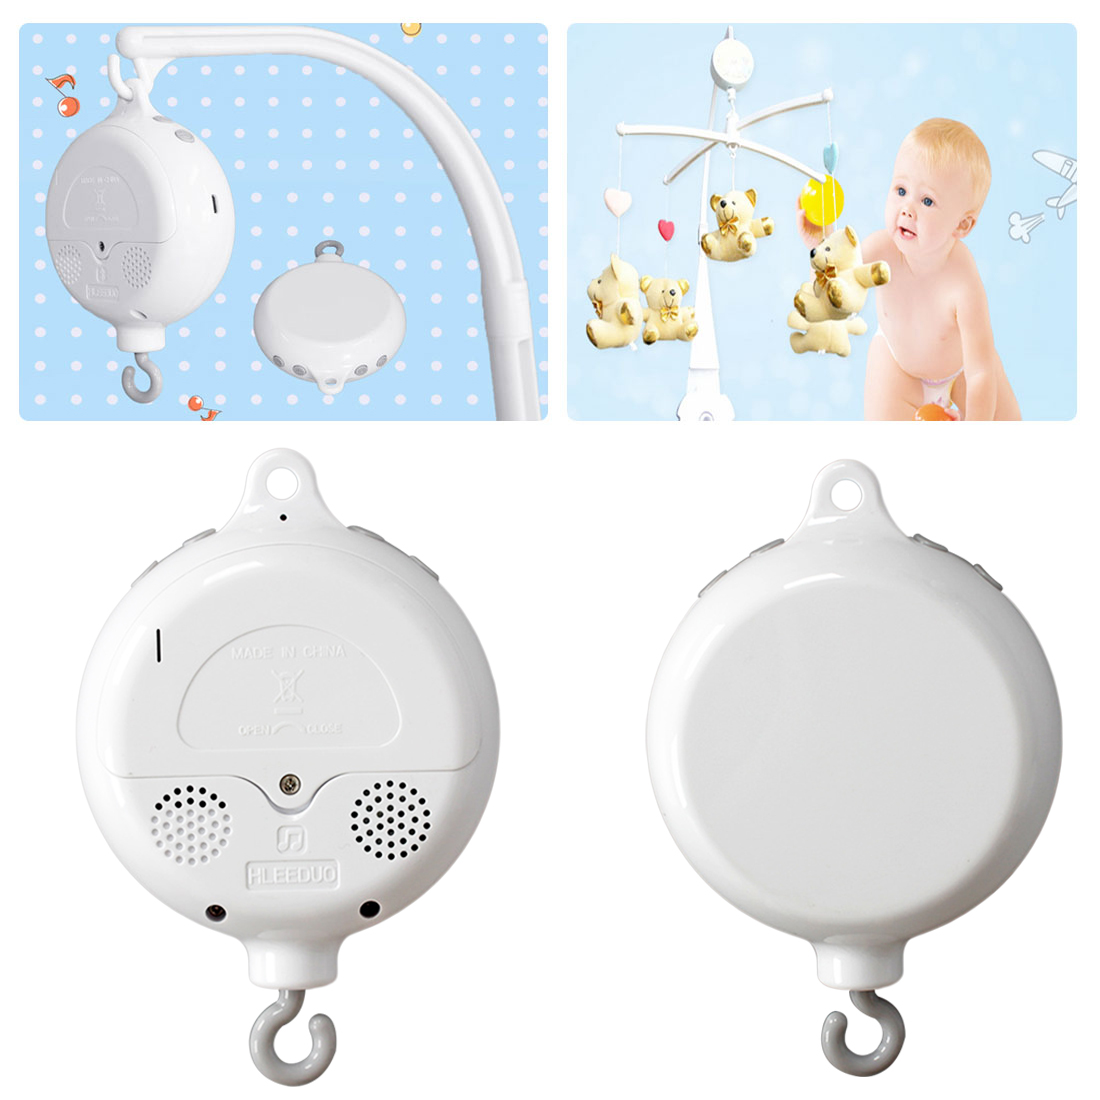 Crib Mobile Toy Song Rotating Baby Phone Bell Toy Battery Powered Baby Bed / Stroller Toy